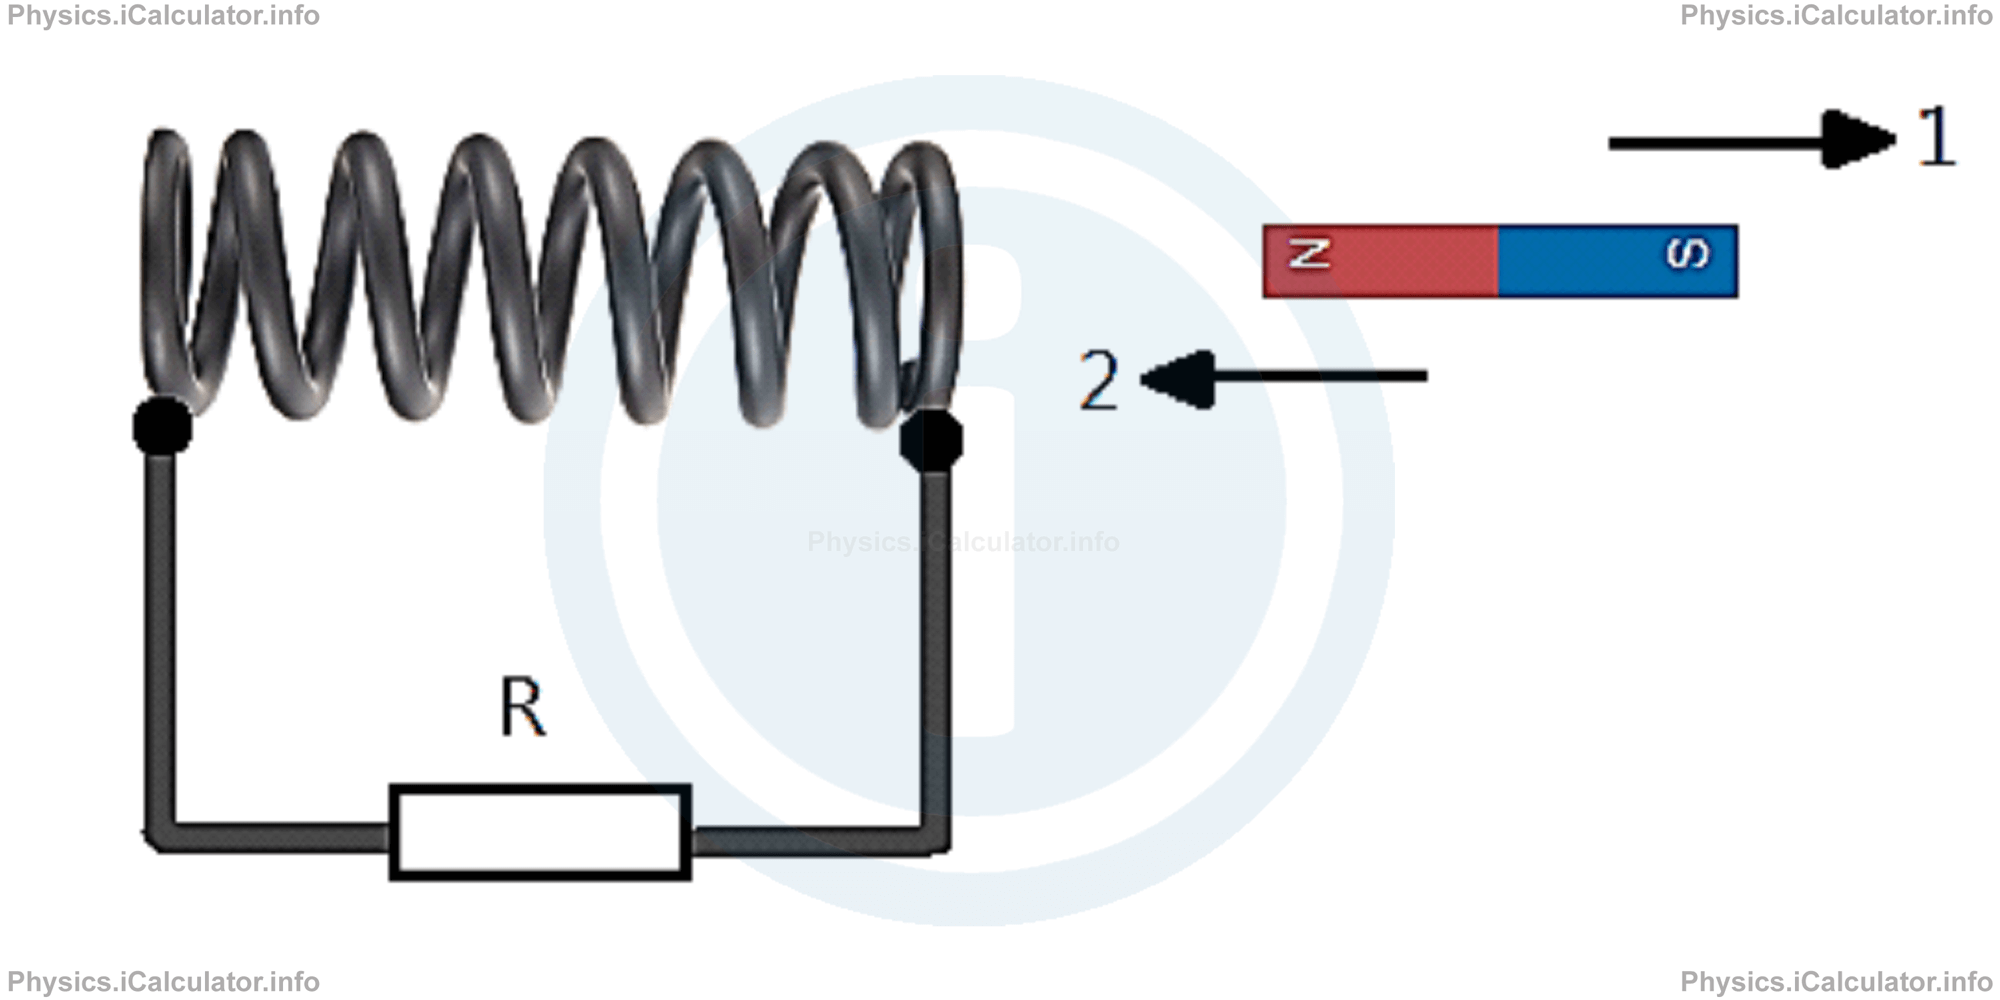 Physics Tutorials: This image provides visual information for the physics tutorial Lentz Law